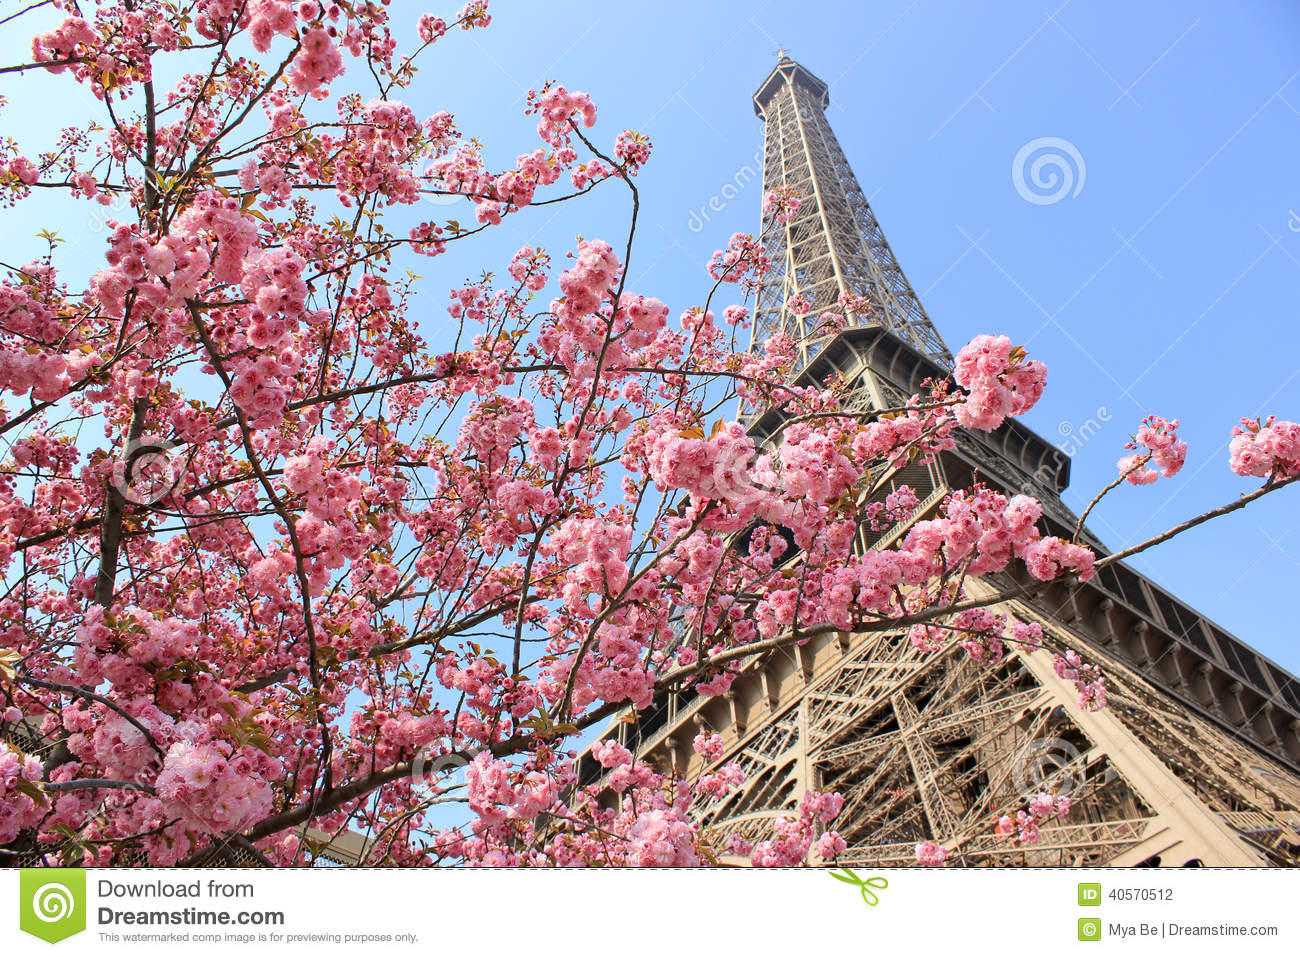 paris france eiffel tower at spring stock photo image of paris voyage 40570512. Black Bedroom Furniture Sets. Home Design Ideas